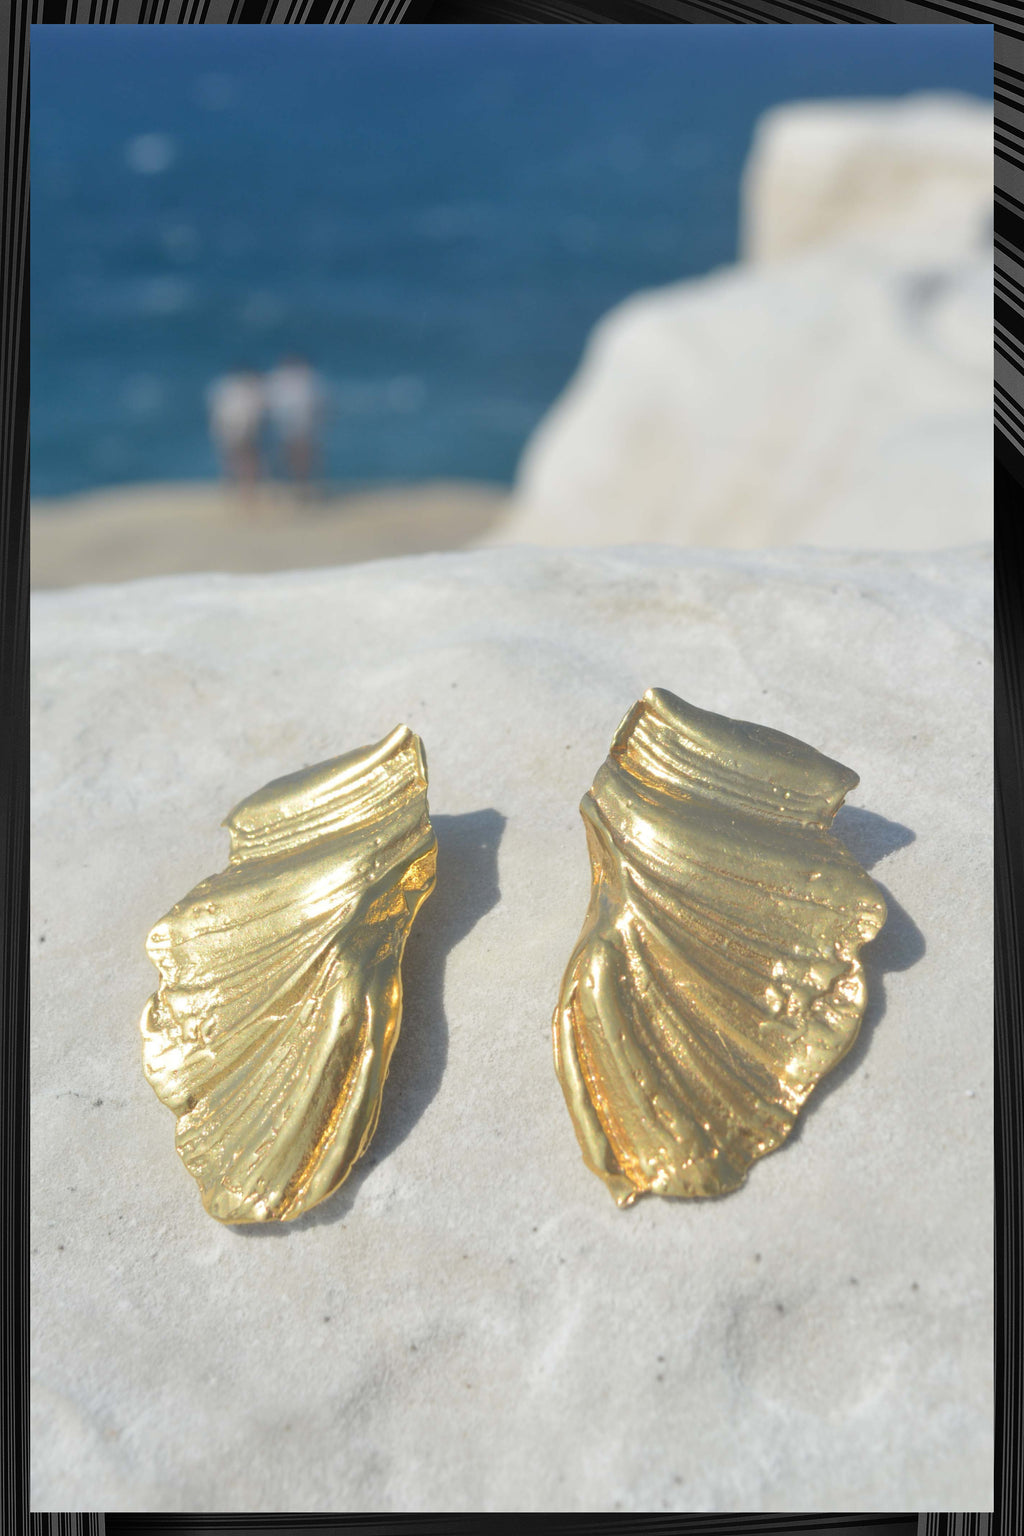 Amfithea Earrings